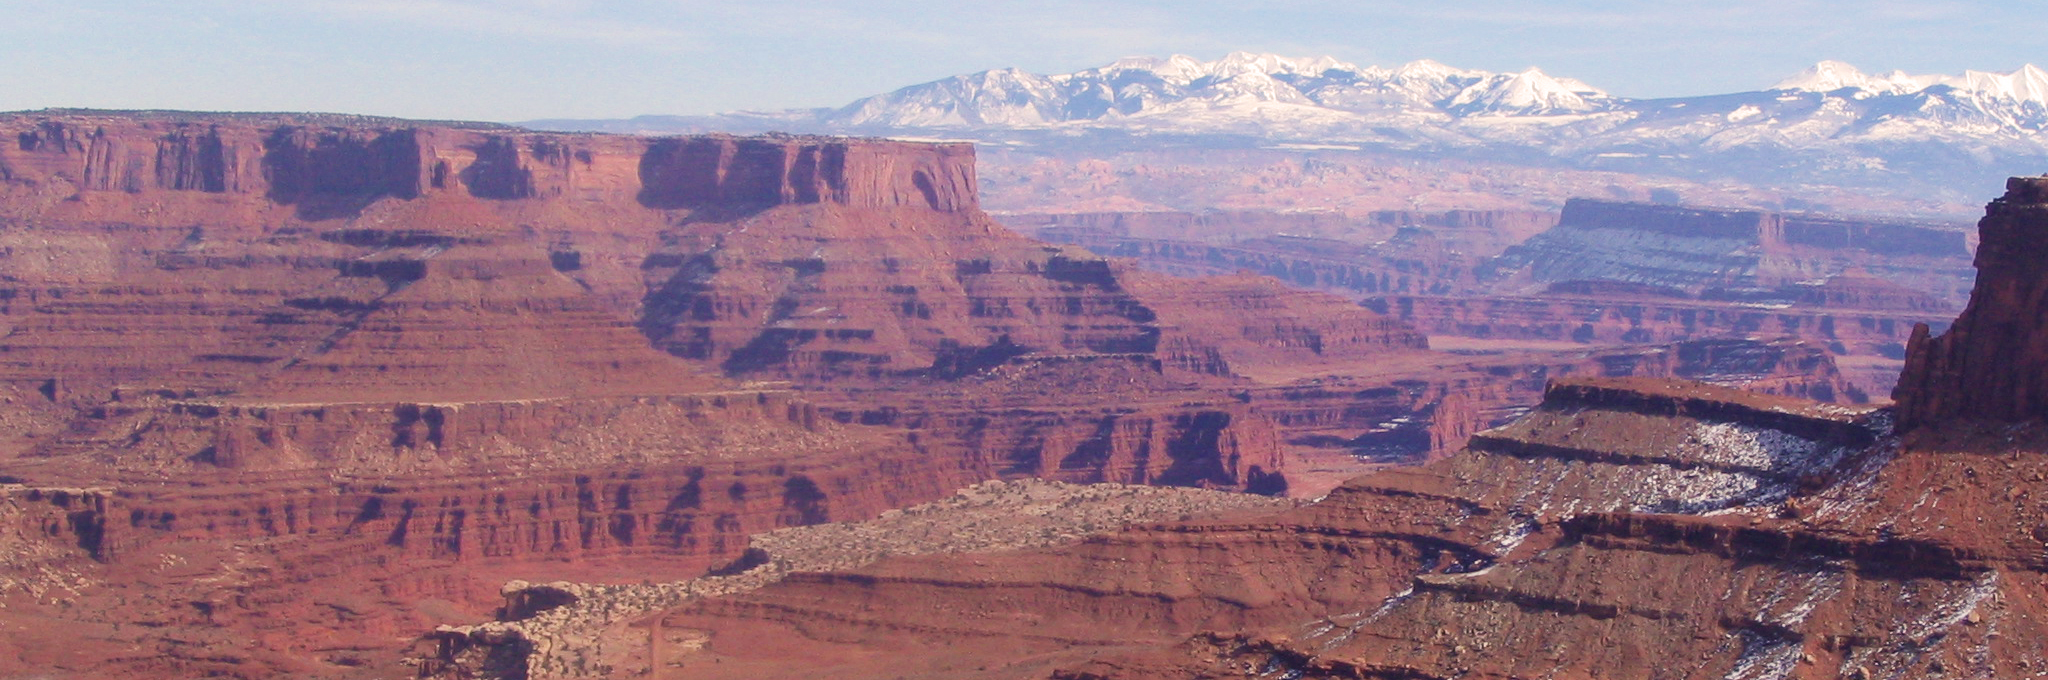 View of the La Sal Mountains above the Shafer Trail, Canyonlands NP full day guided mountain bike tour